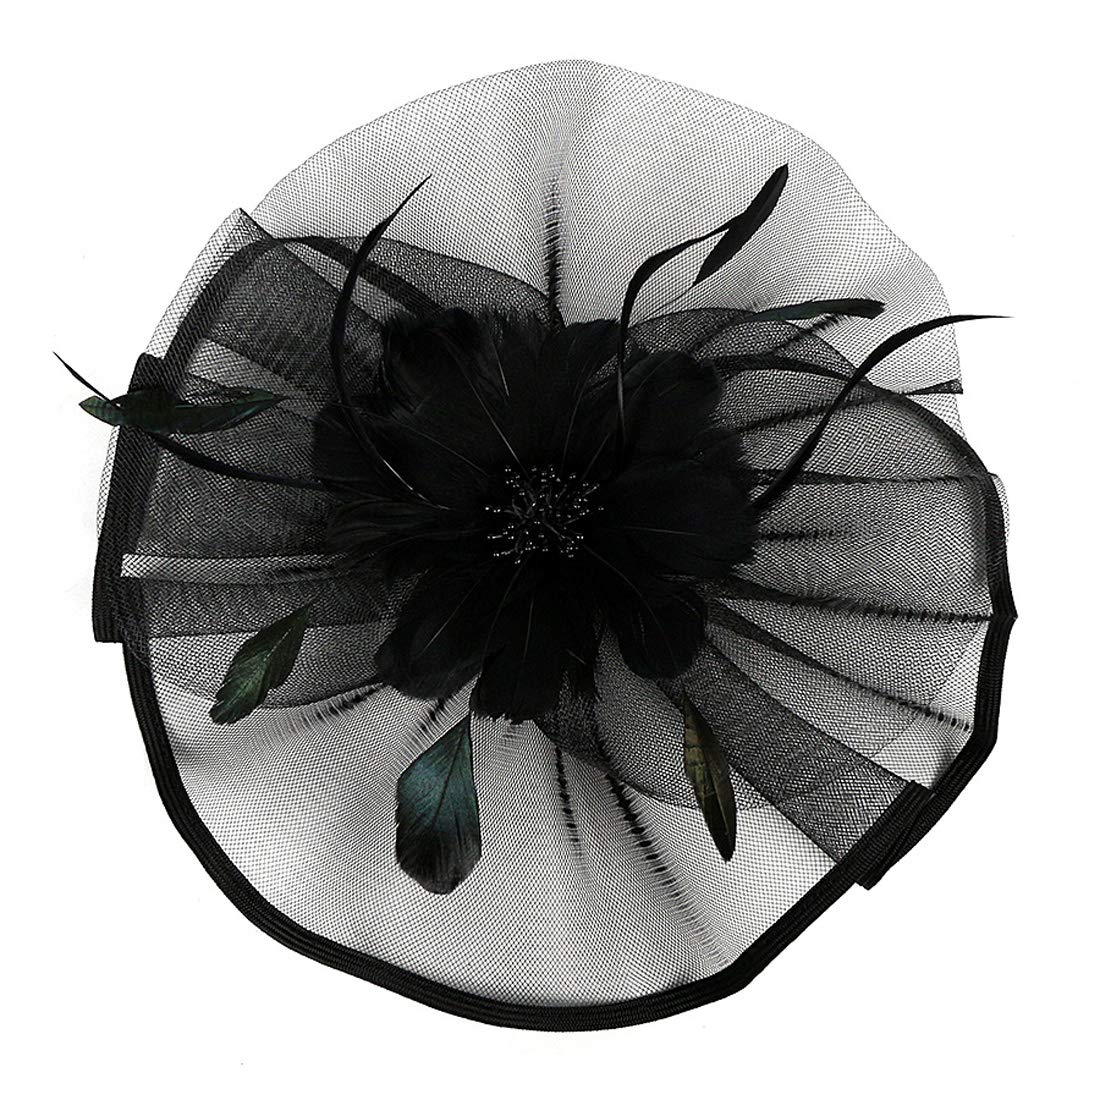 JaosWish Fascinator for Women Wedding Hat Feather Mesh Clip Fascinators Headband for Royal Ascot Cocktail